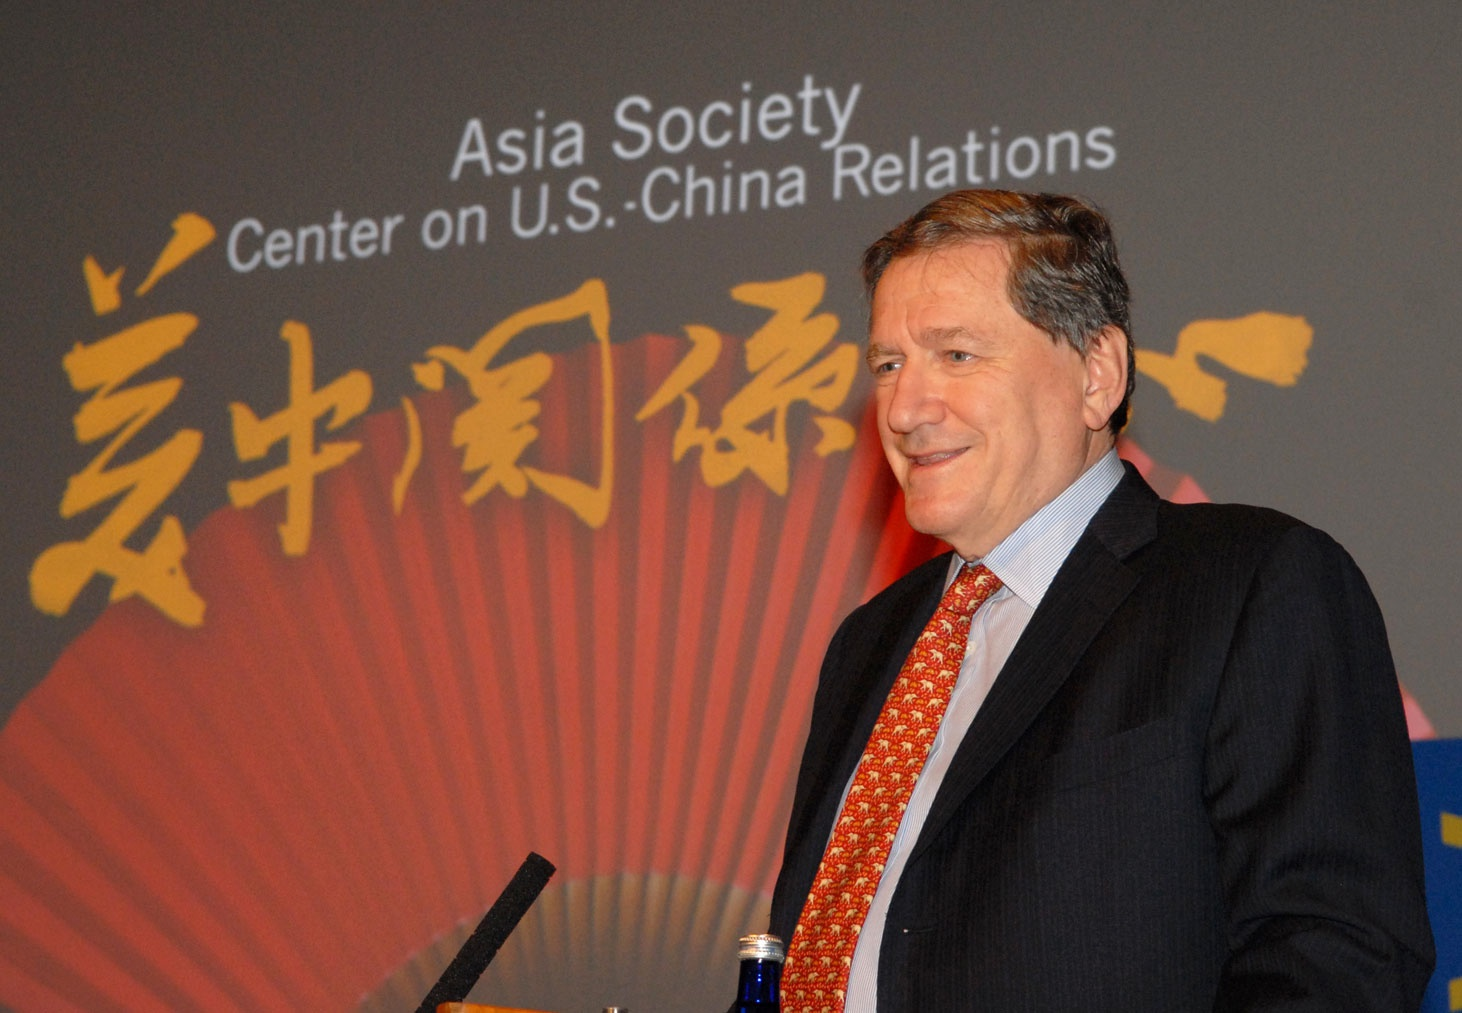 Richard Holbrooke (photo credit: Asia Society/flickr)